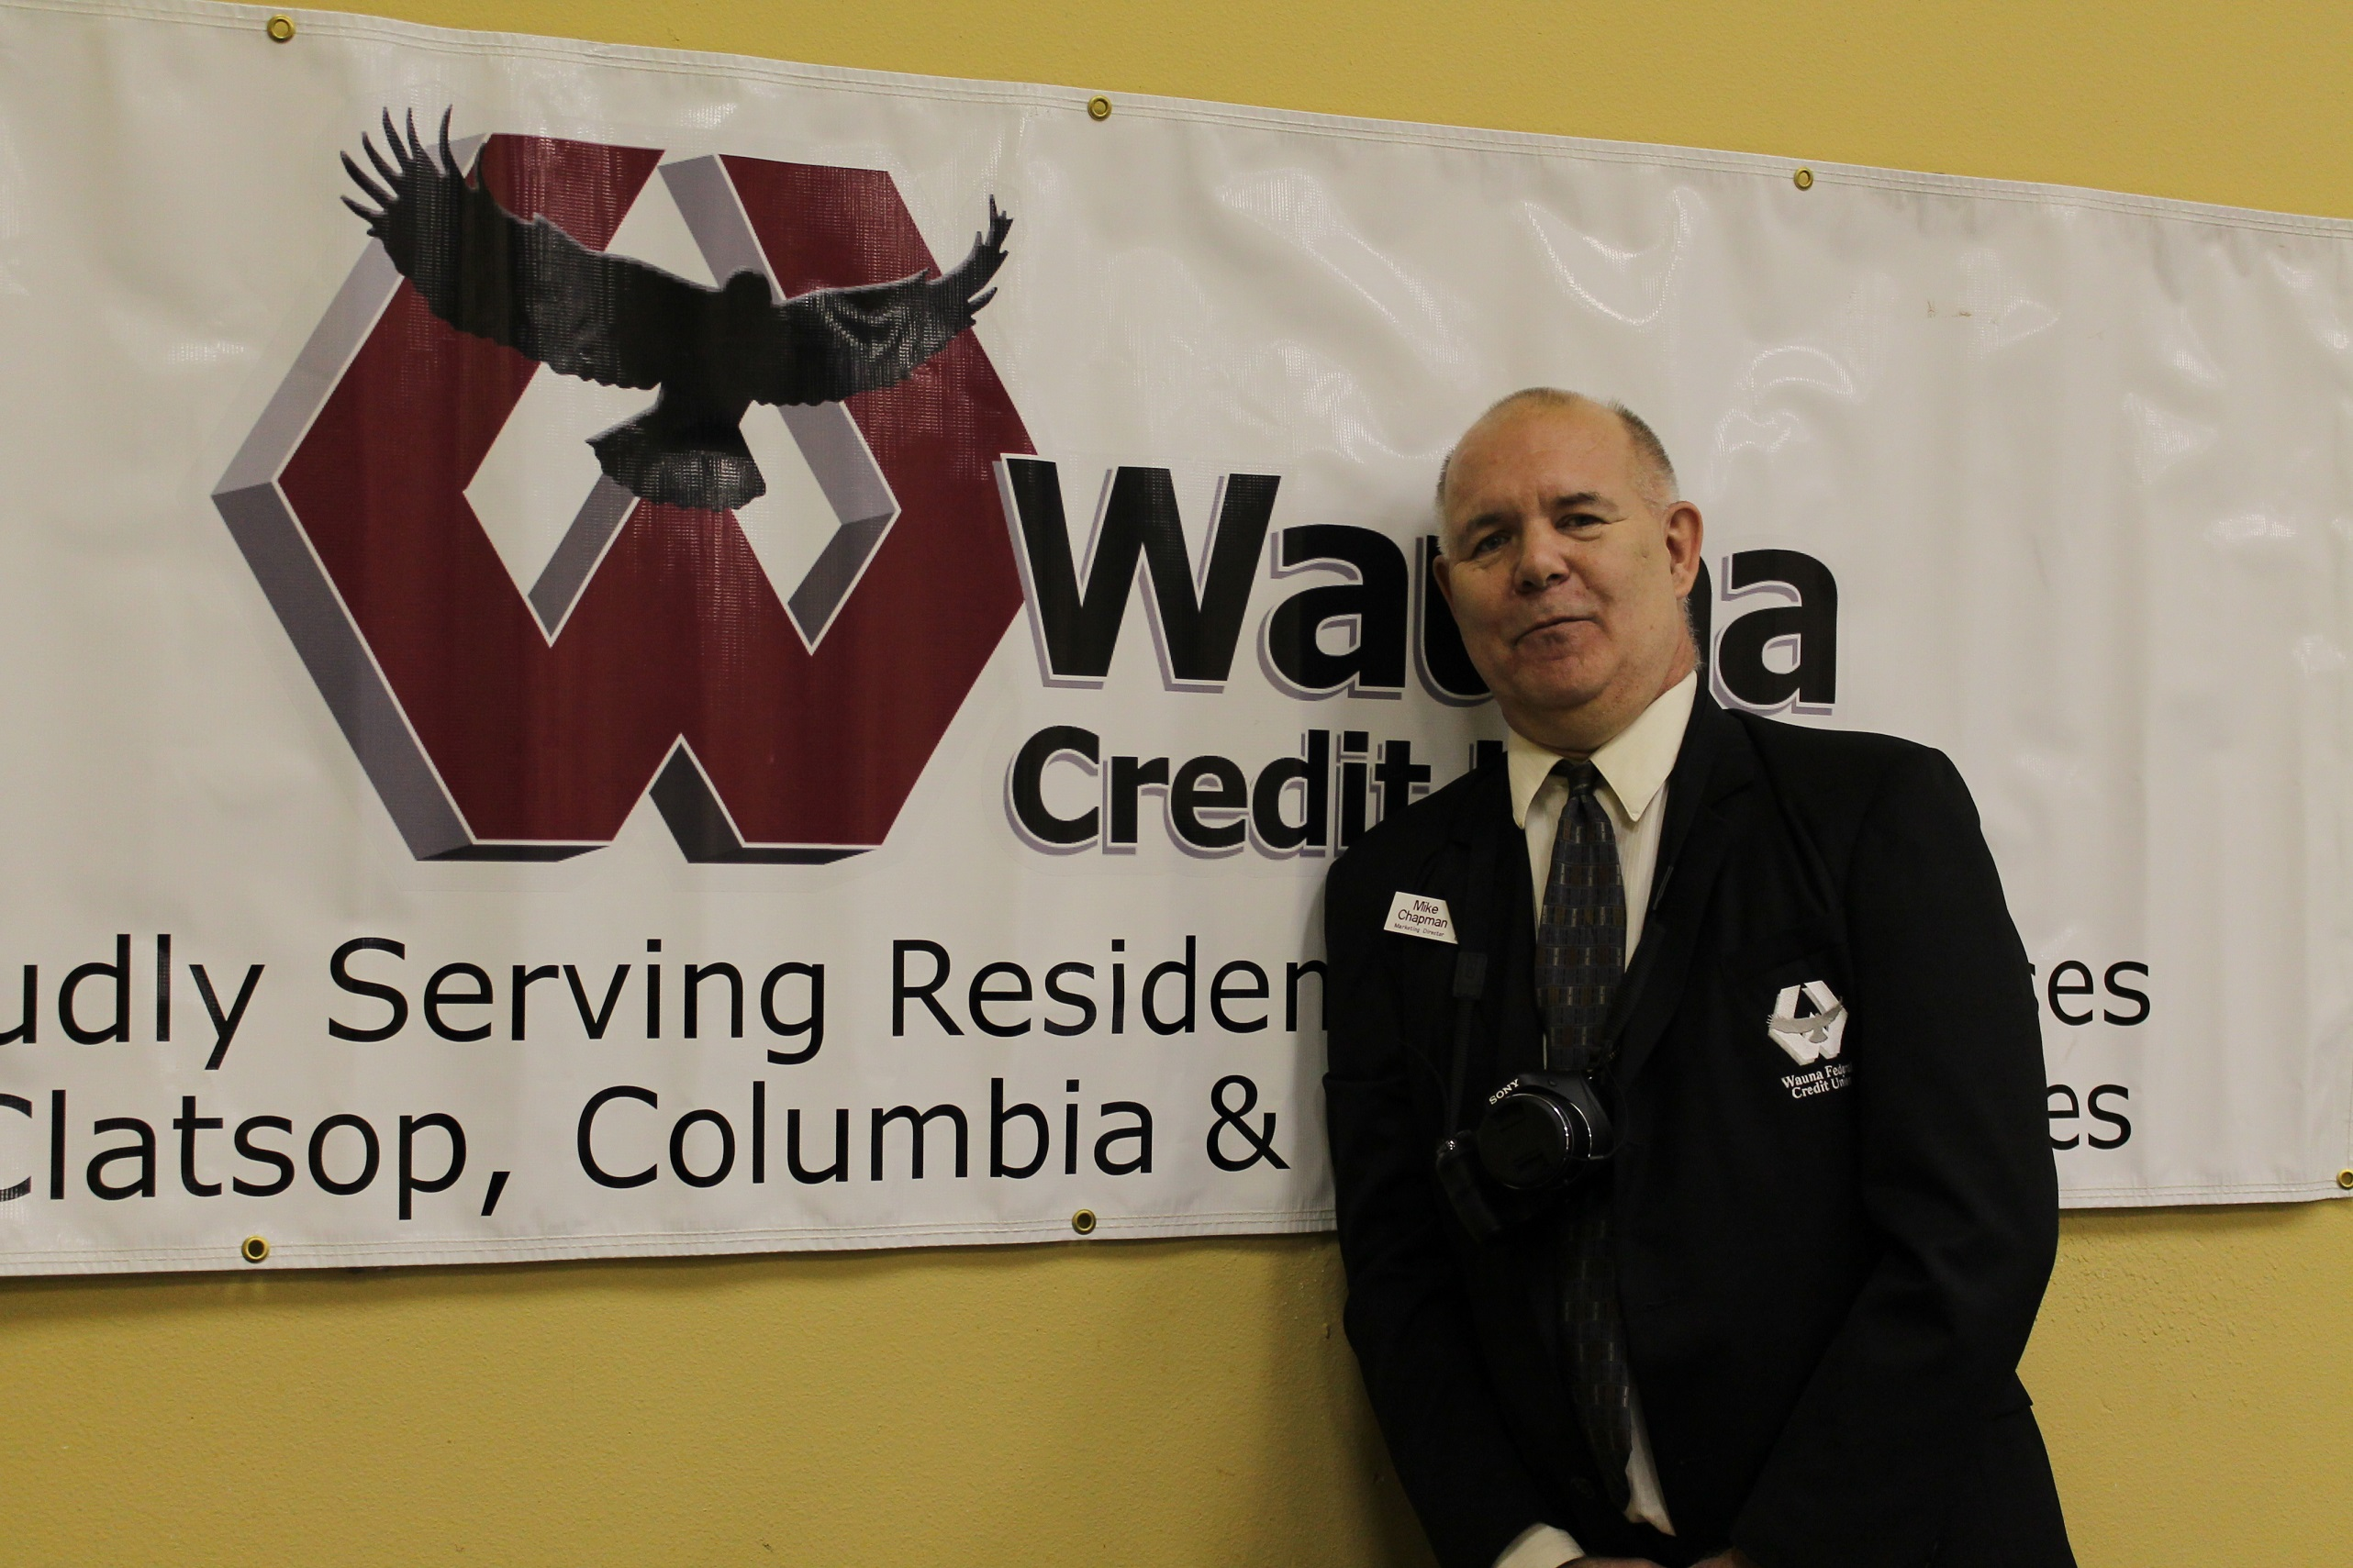 Mike poses against a Wauna banner at the annual meeting